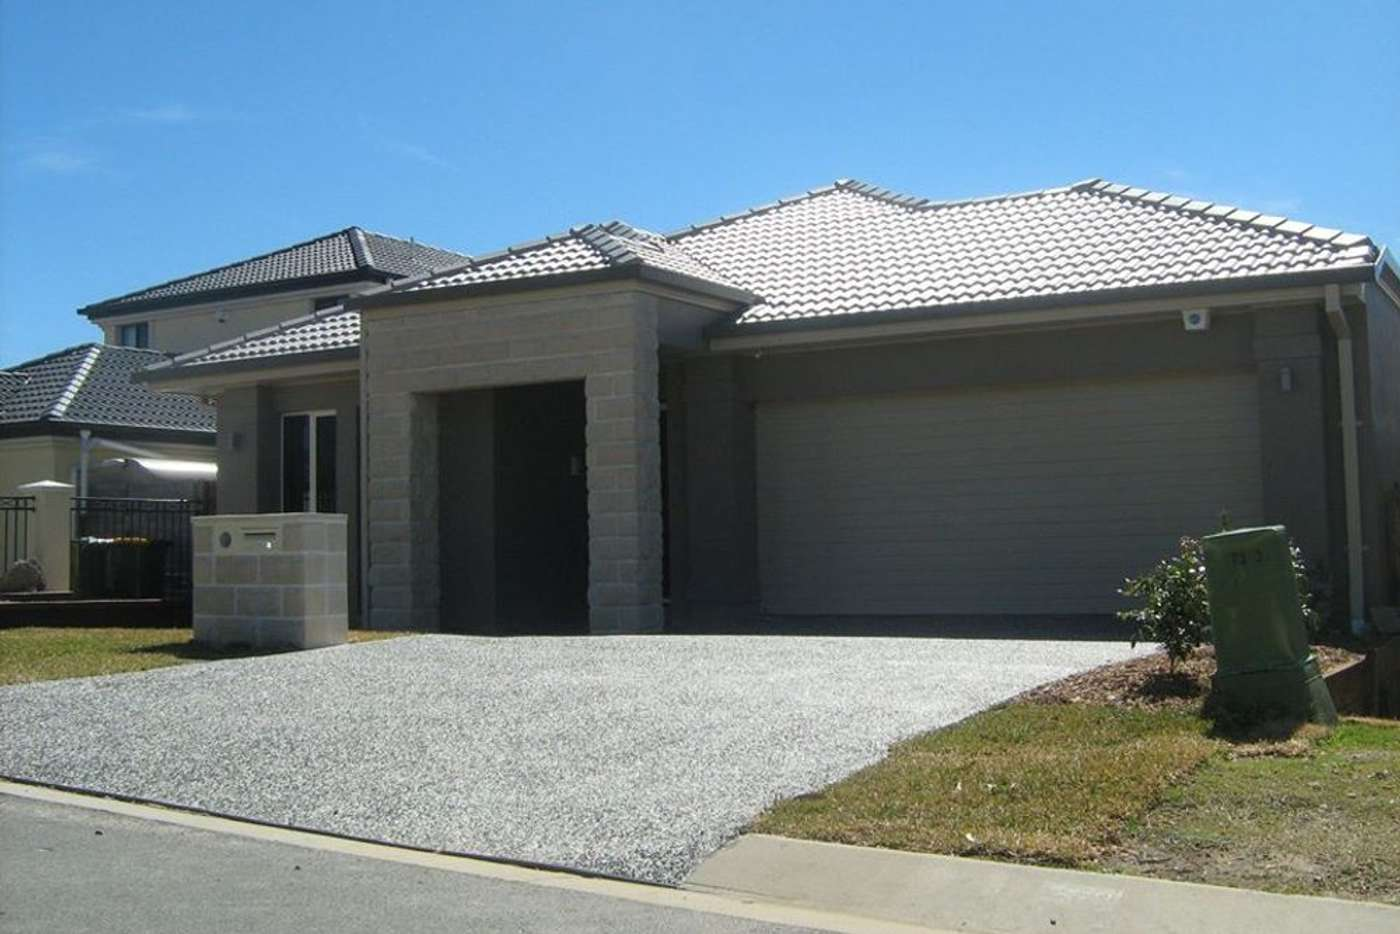 Main view of Homely house listing, 4 Abbotsford Place, Forest Lake QLD 4078